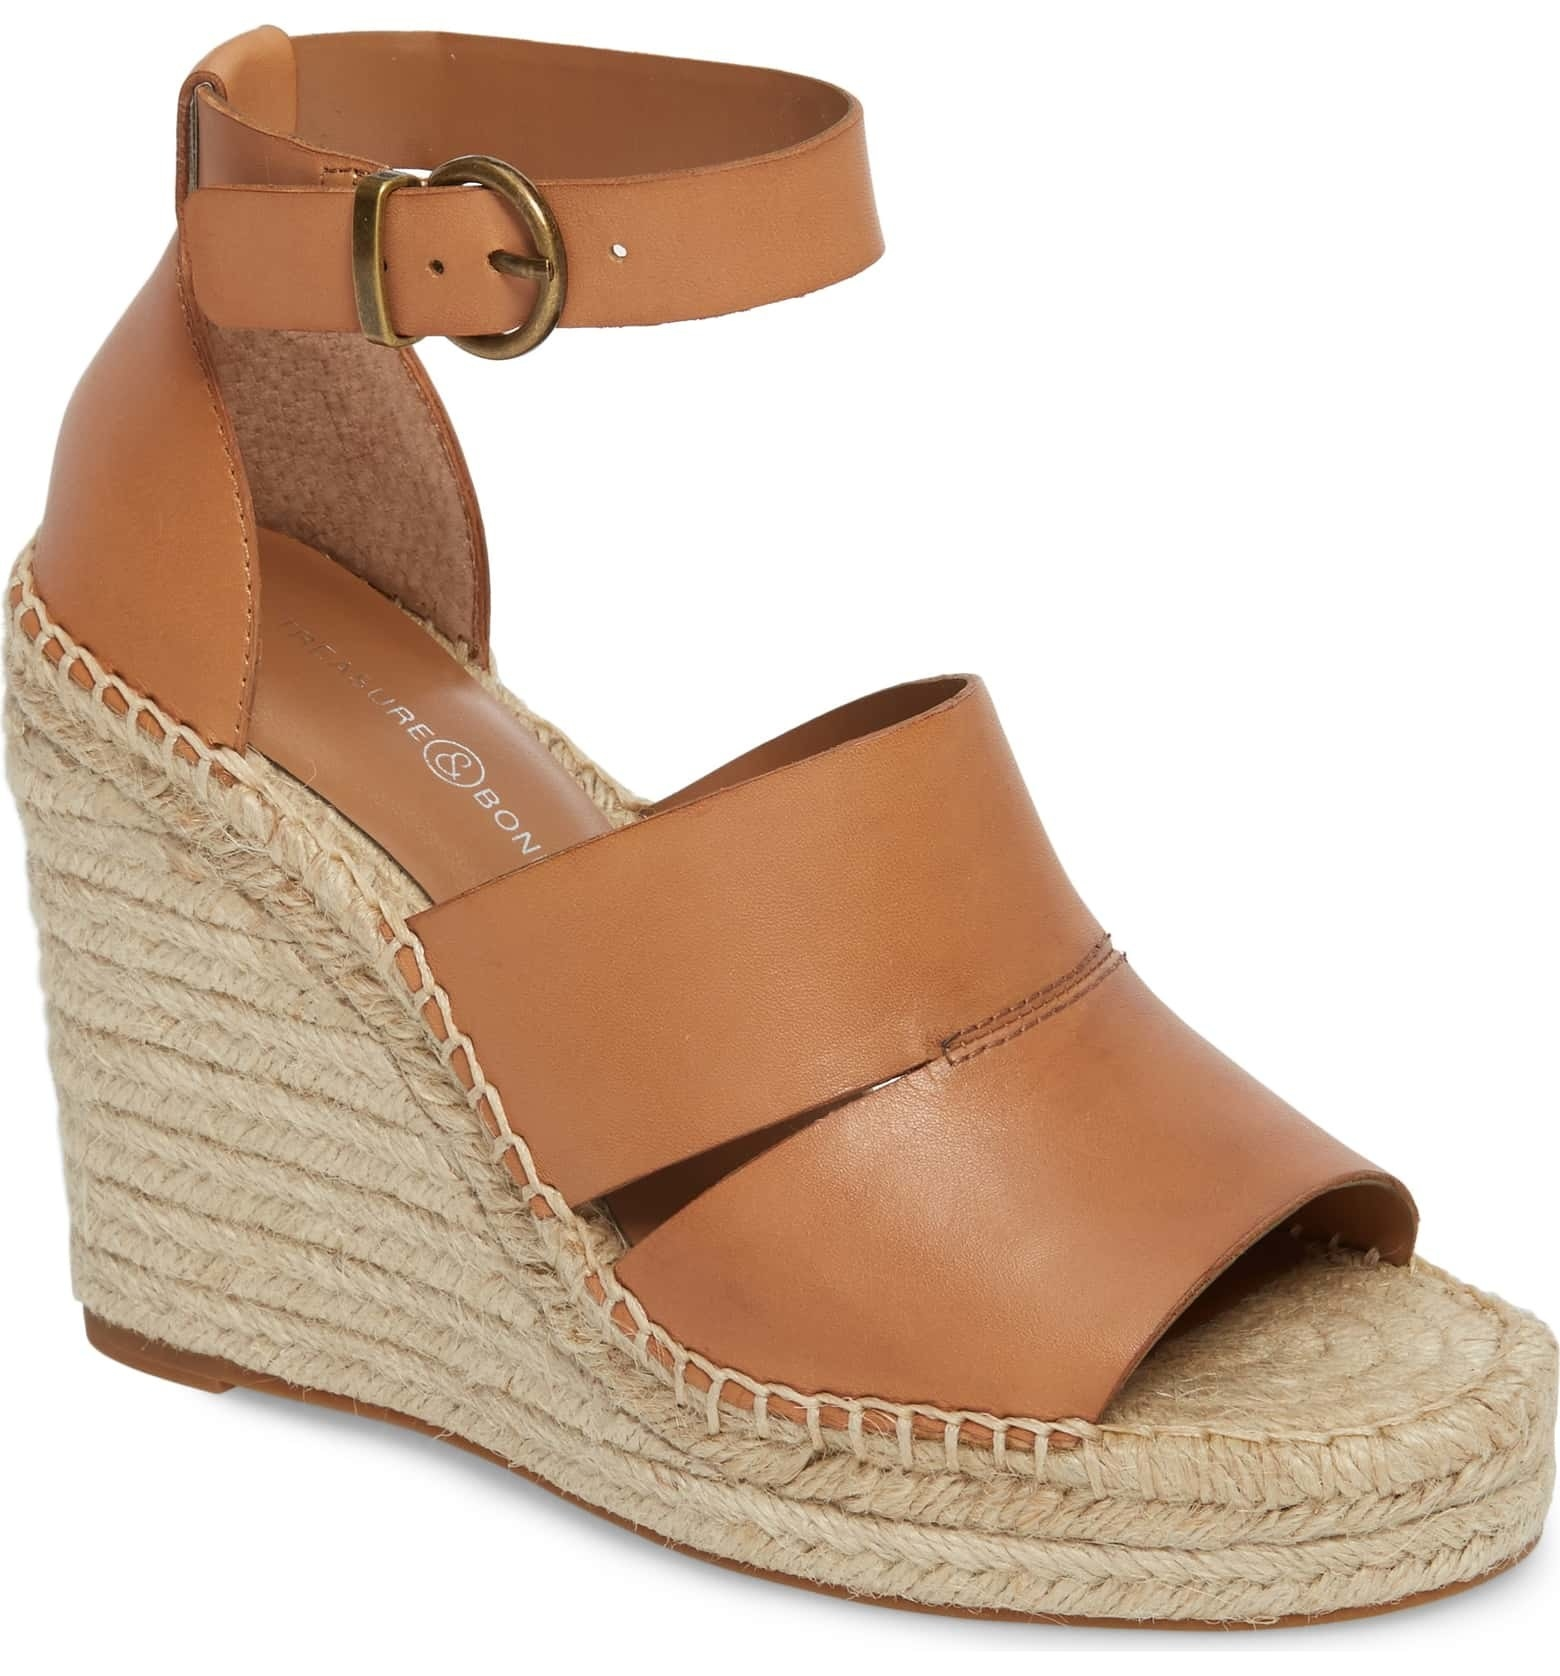 c61e7cd4b Platform espadrille wedges to put a spring in your step as soon as the sun  starts shining again.